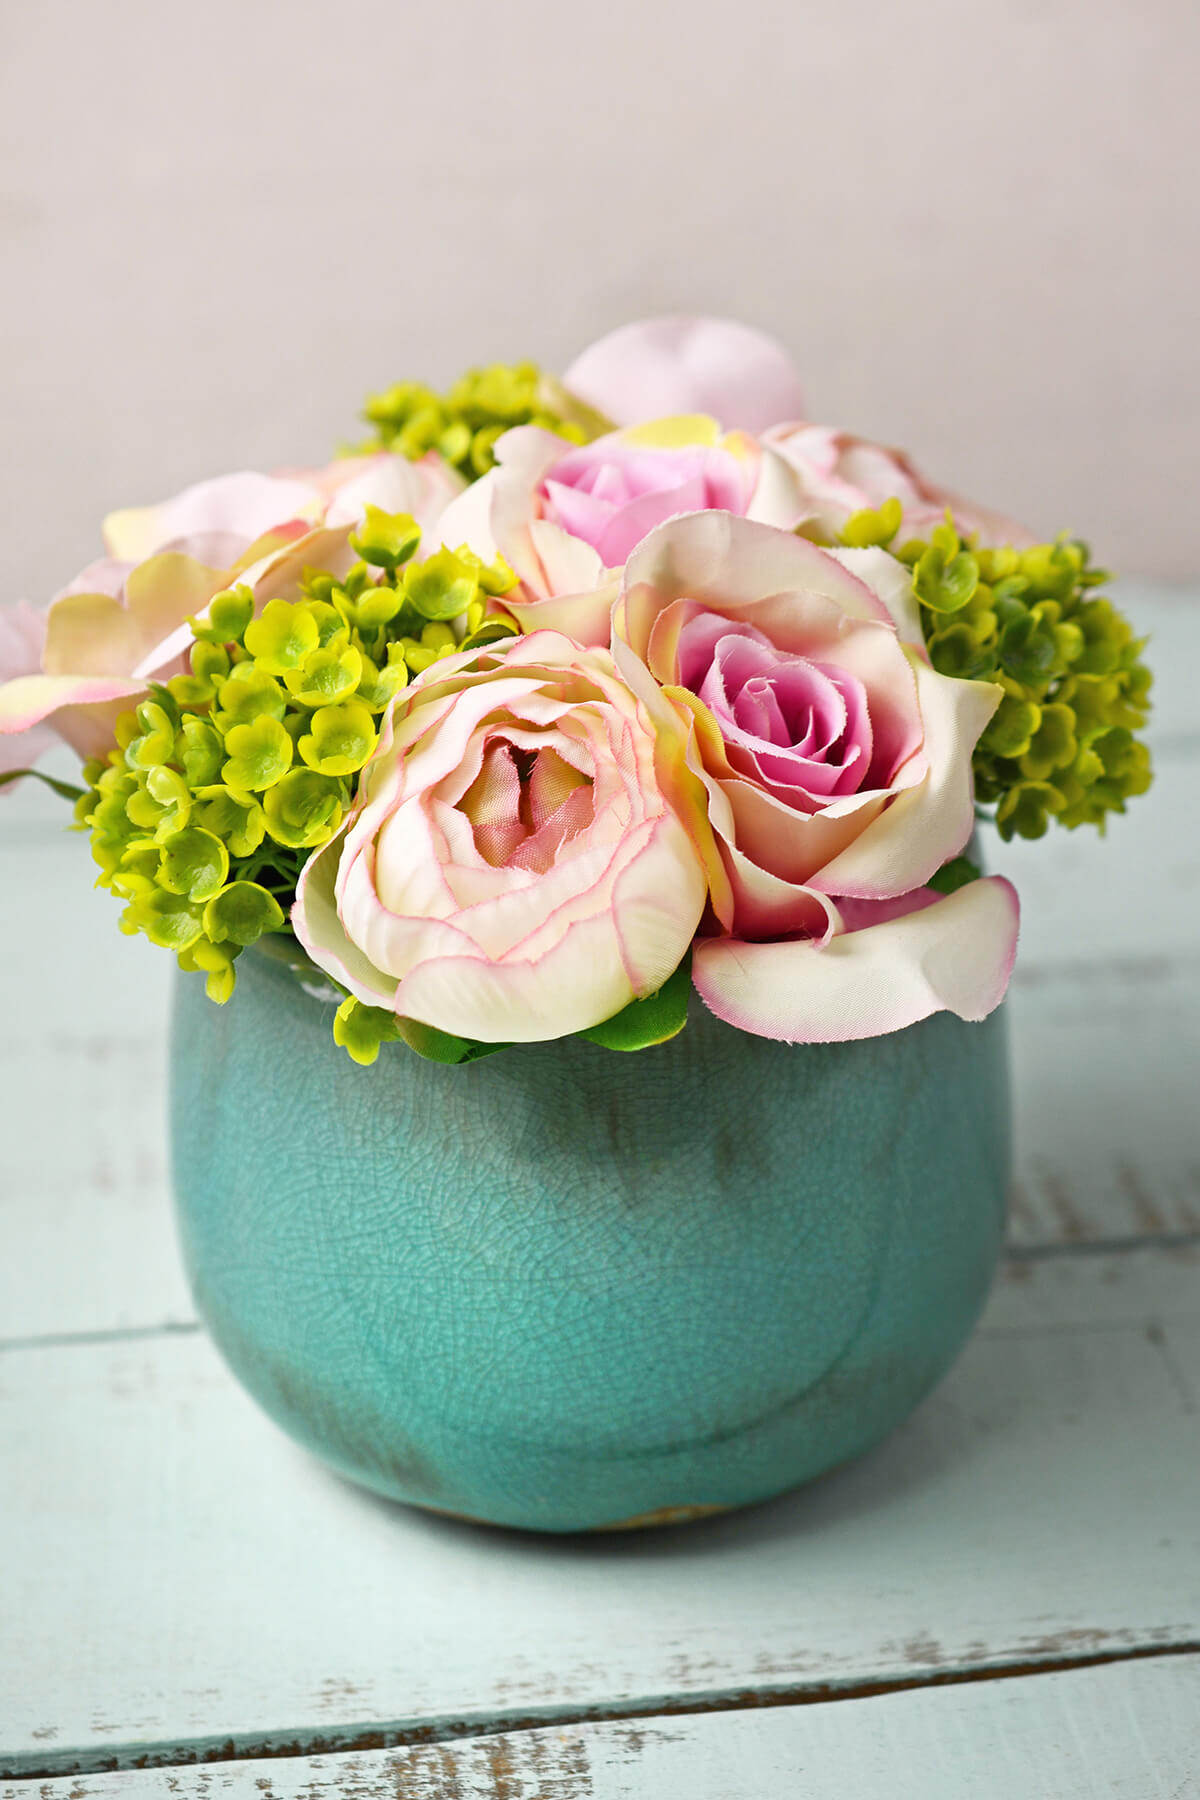 Pink & Green Rose & Hydrangea Flowers in Crackled Vase